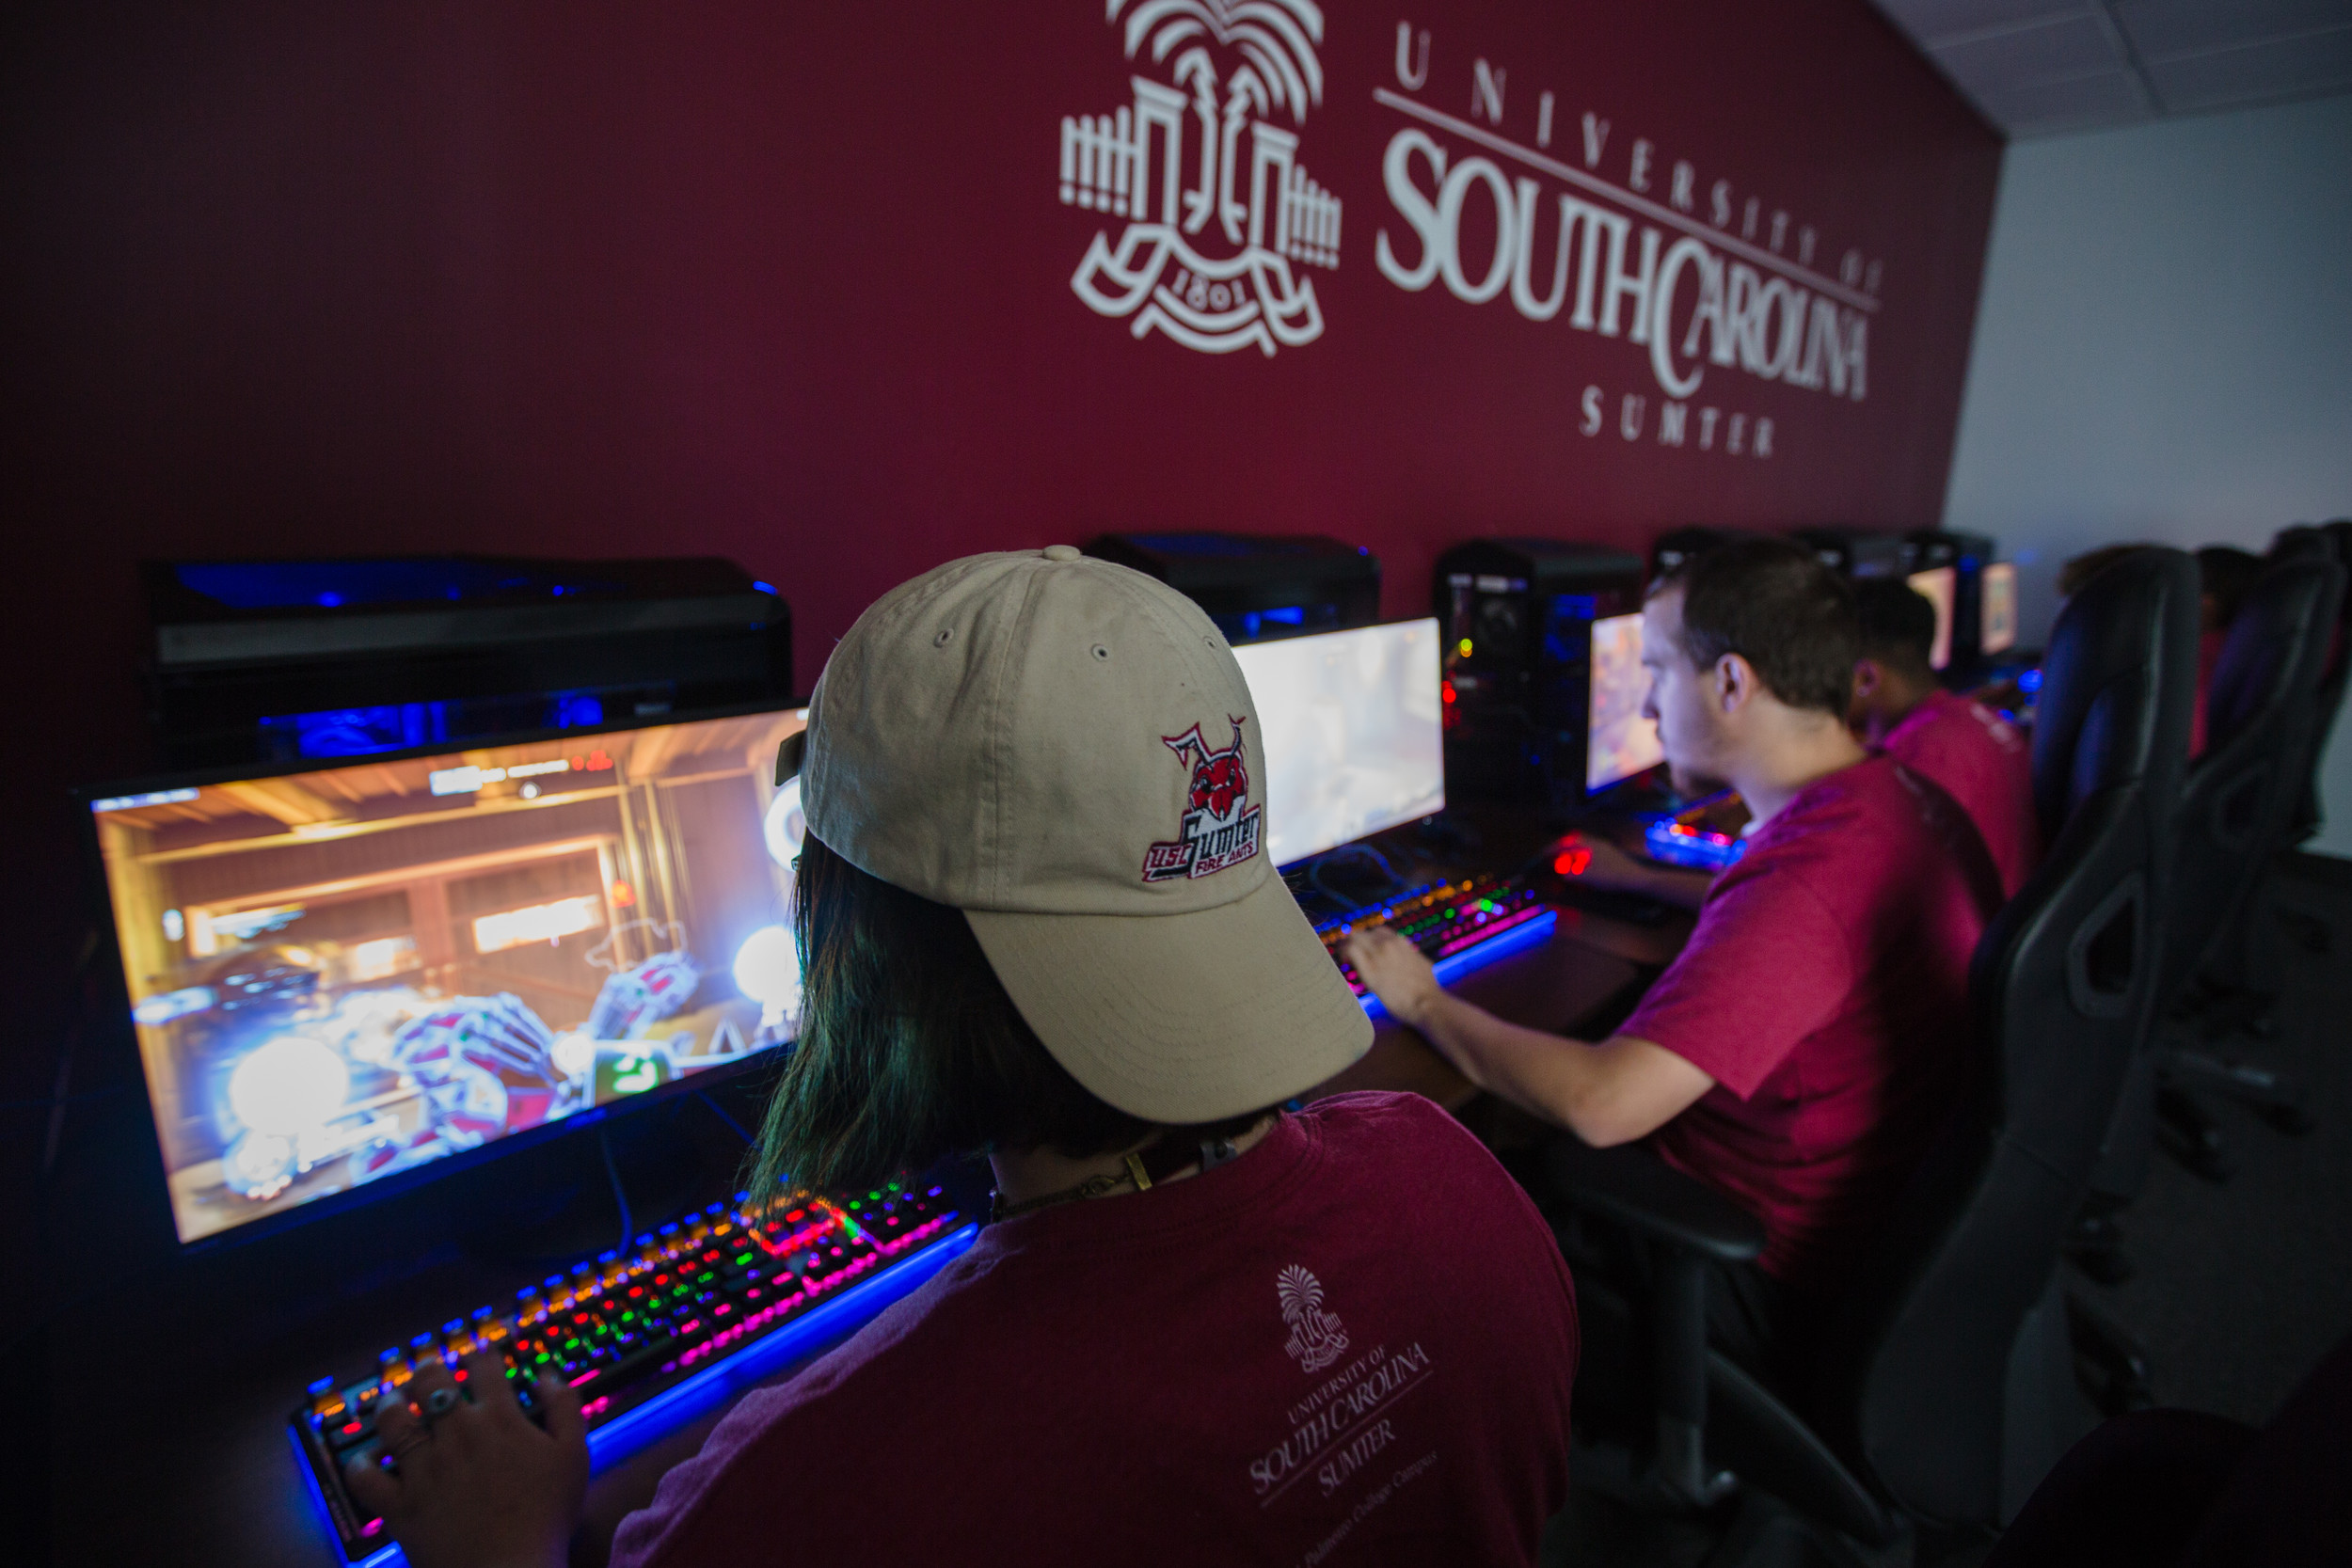 University of South Carolina Sumter students and eSports varsity team gamers participate in a practice session in the school's eSports arena on Thursday. USC Sumter started the varsity program in 2015.